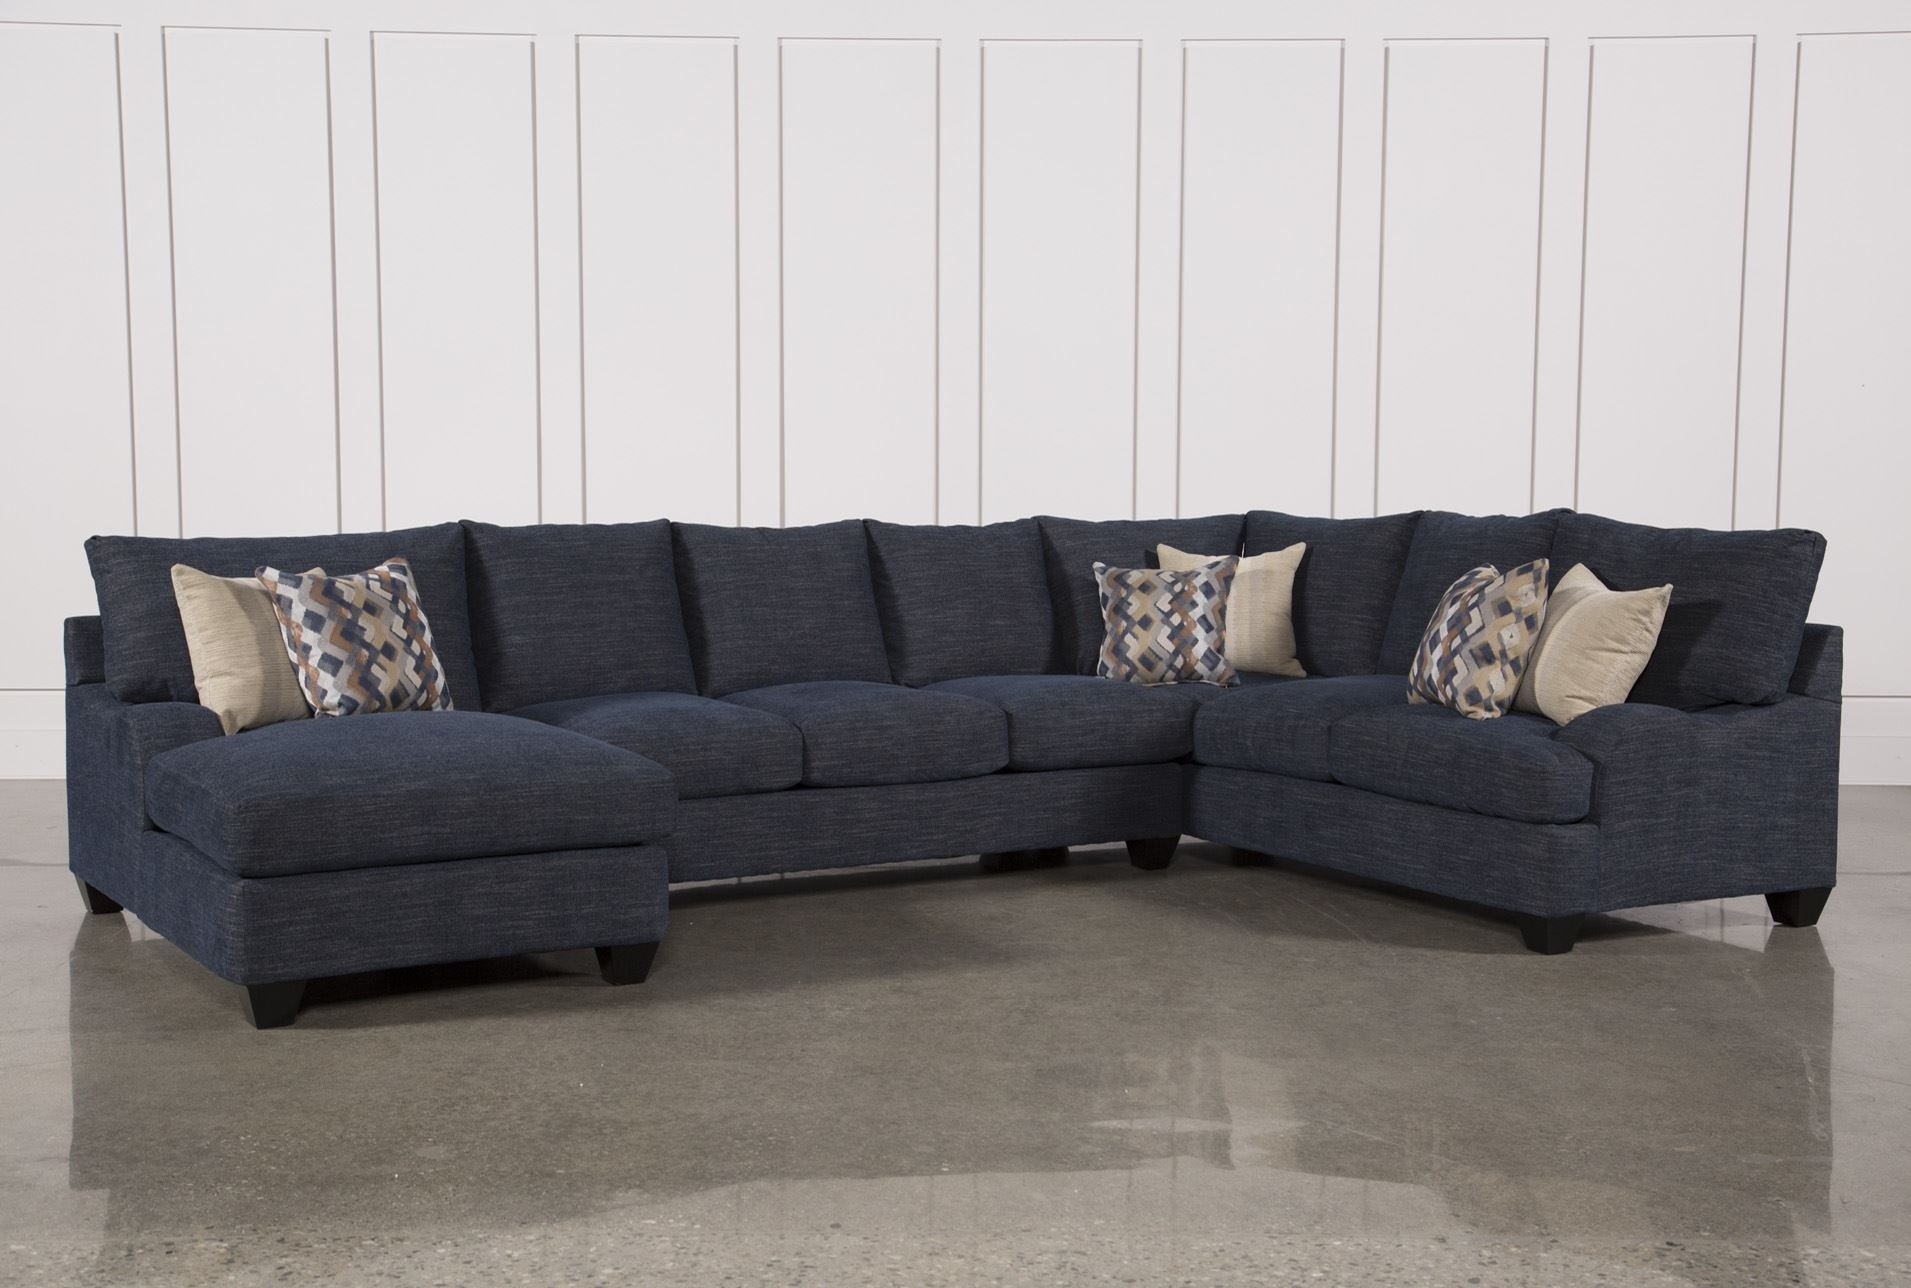 Sierra Down 3 Piece Sectional W/laf Chaise, Blue, Sofas | Foam with regard to Sectional Sofas at Brampton (Image 13 of 15)